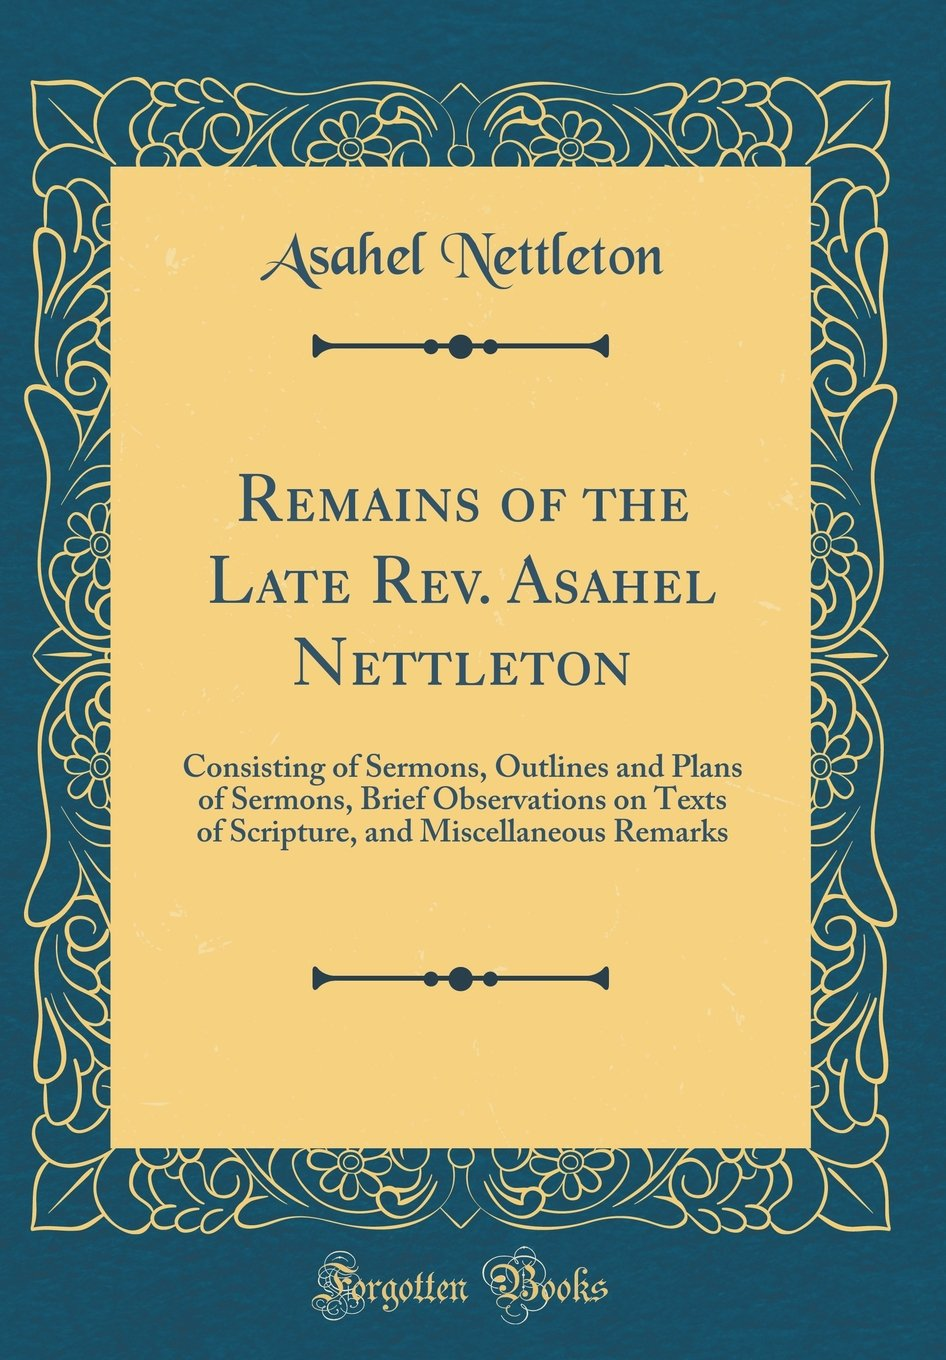 Read Online Remains of the Late Rev. Asahel Nettleton: Consisting of Sermons, Outlines and Plans of Sermons, Brief Observations on Texts of Scripture, and Miscellaneous Remarks (Classic Reprint) ebook